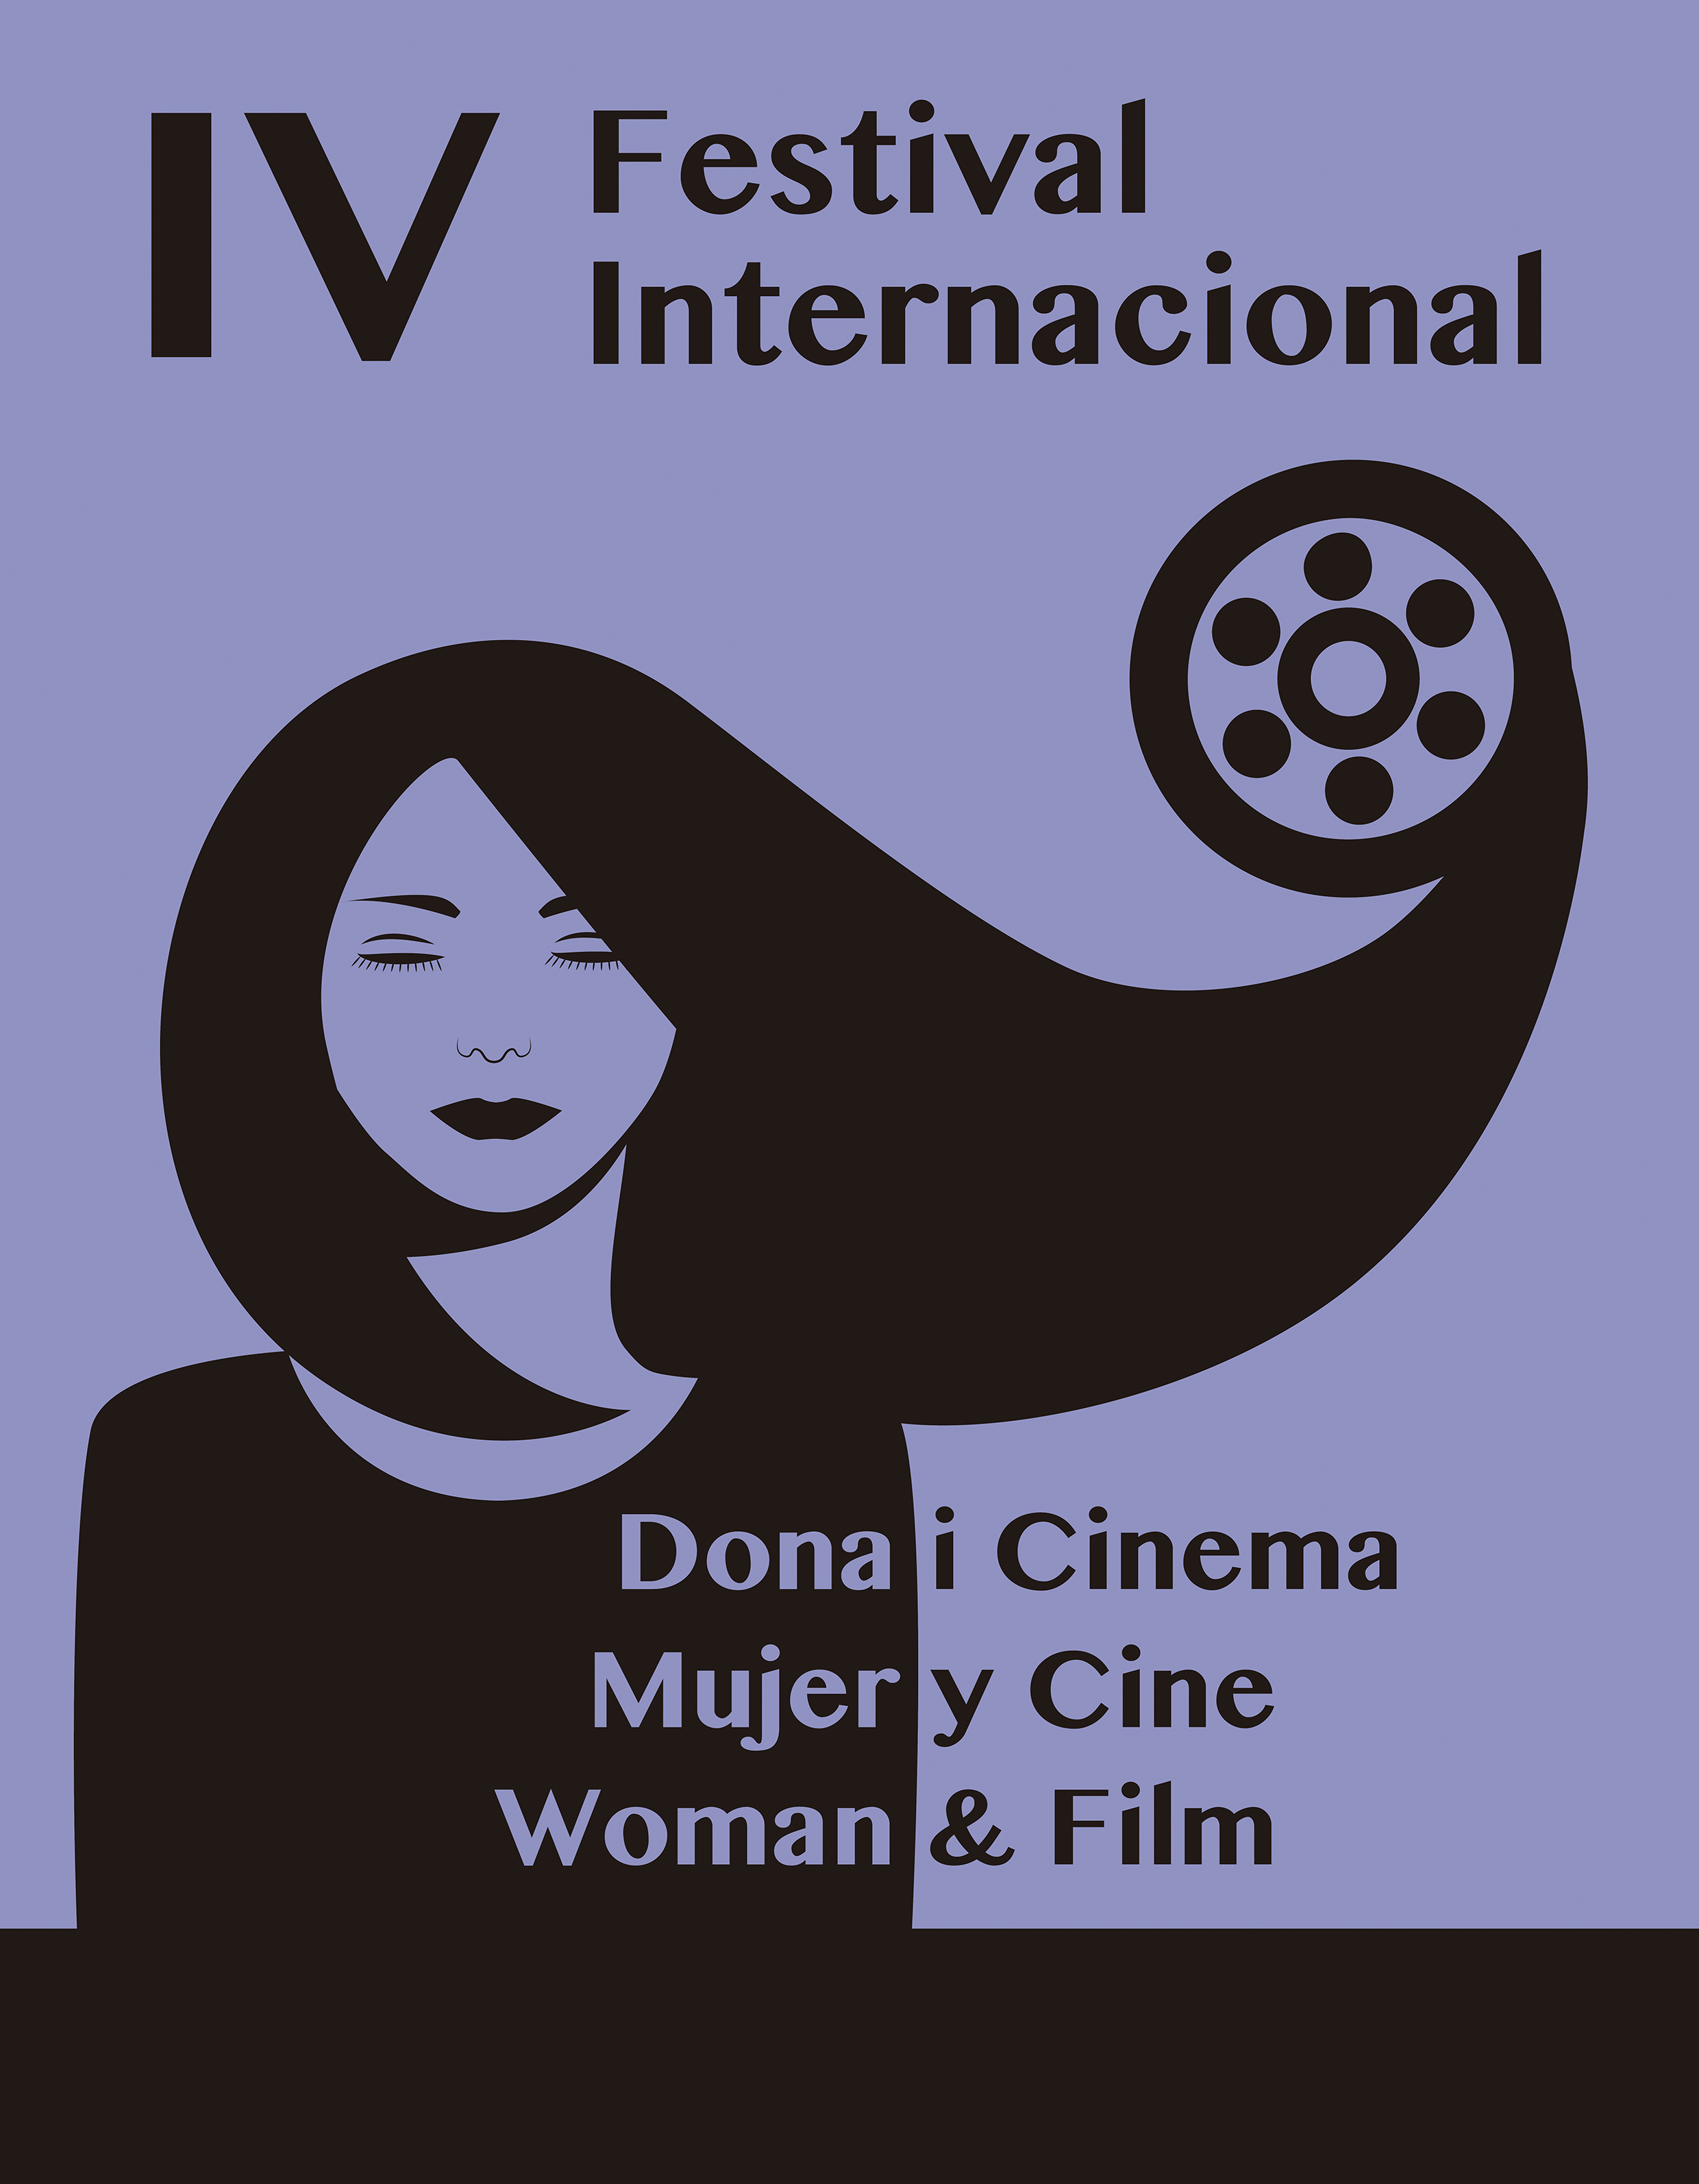 dona-i-cinema-giulia-pantalla_small